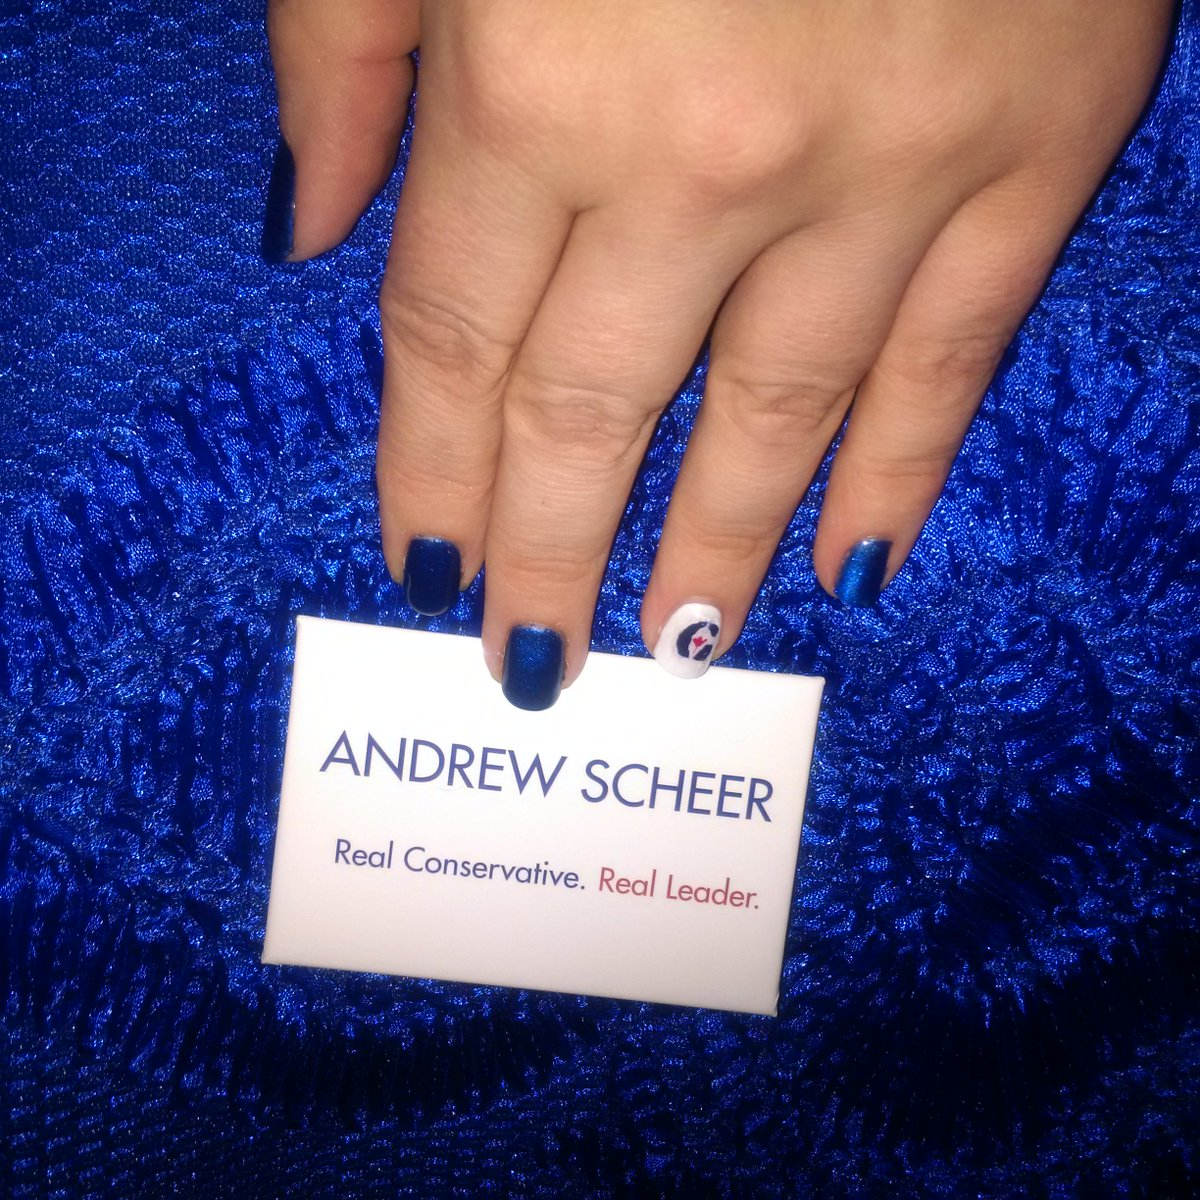 On my way to #CPCLdr convention to cheer on @andrewscheer! My nails sh...